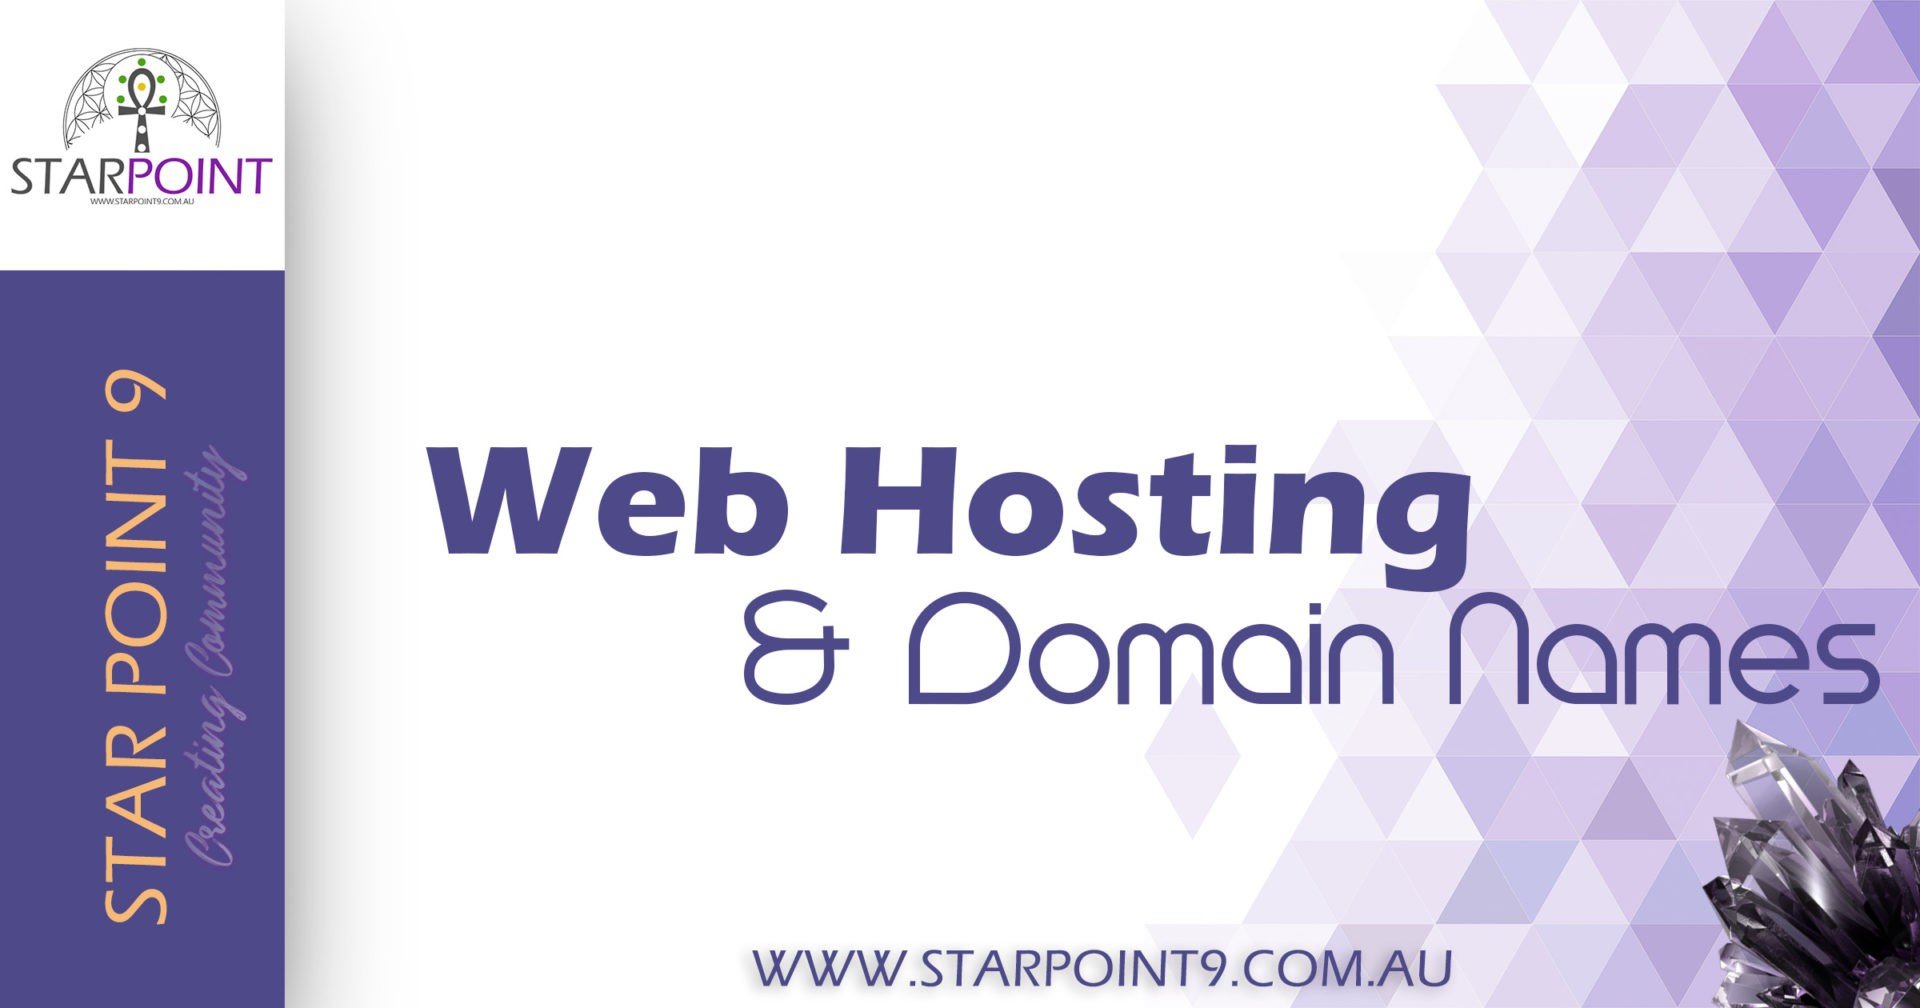 Web Hosting & Domain Names with Star Point 9